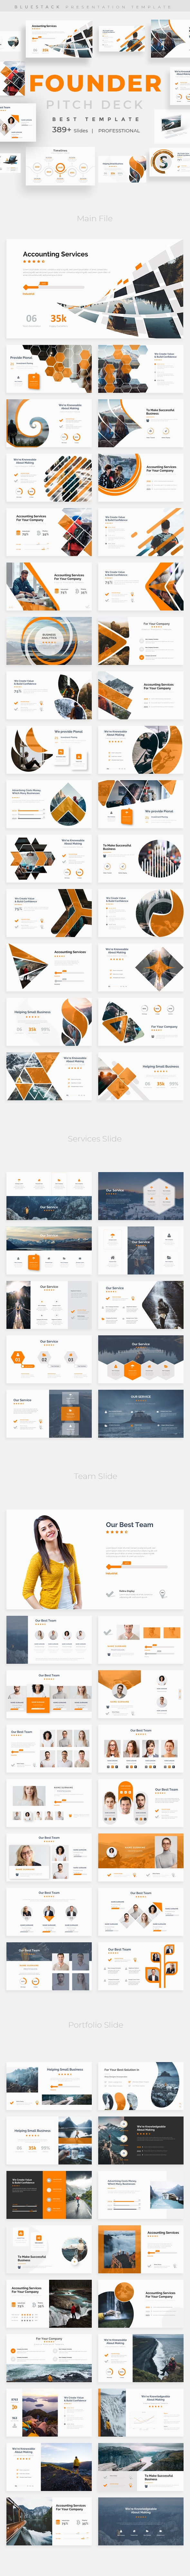 Founder Pitch Deck Powerpoint Template - Business PowerPoint Templates